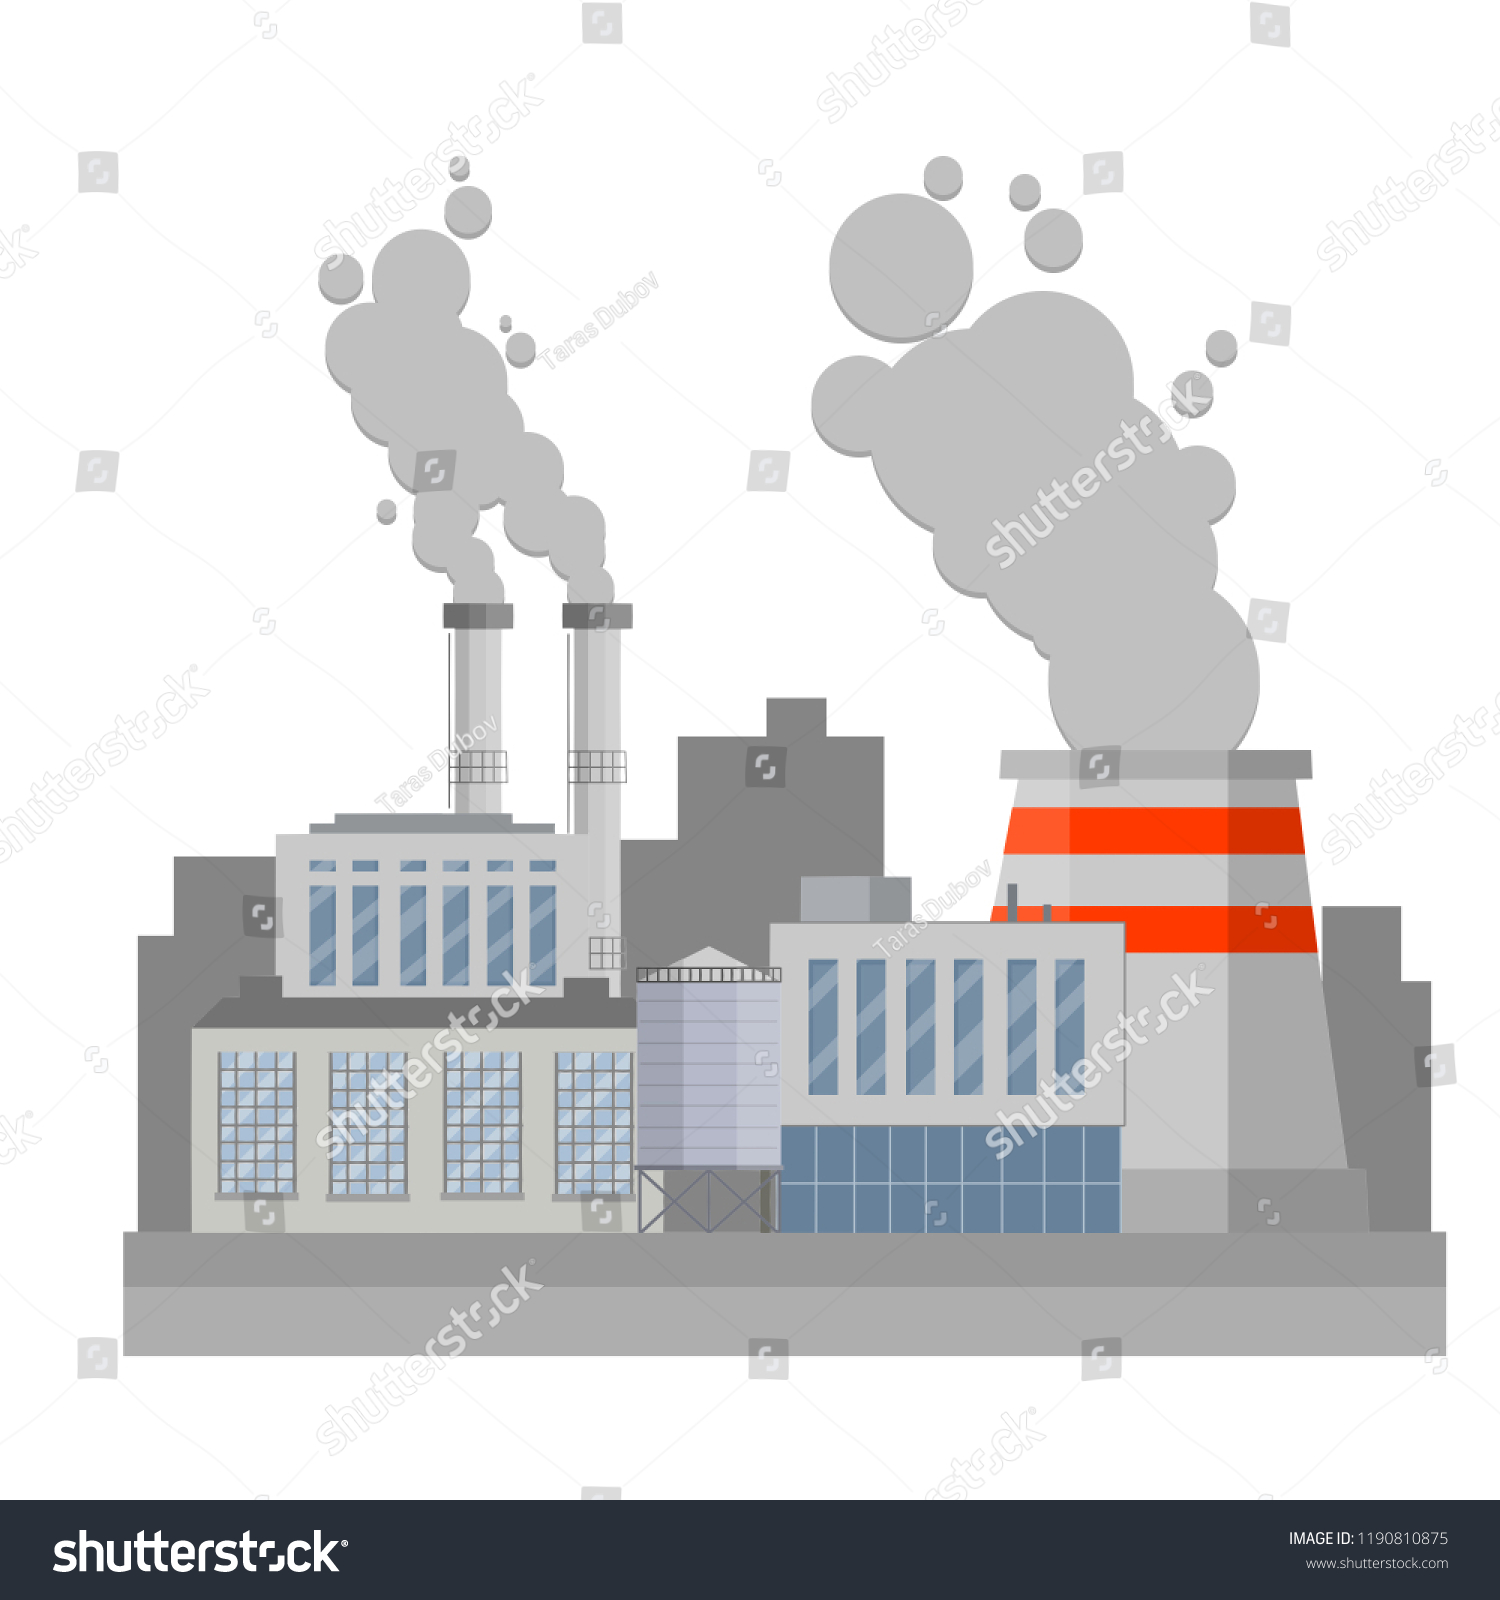 Industrial Area City Thermal Power Plant Stock Vector Royalty Free Nuclear Diagram Animation Factory For The Production Of Energy